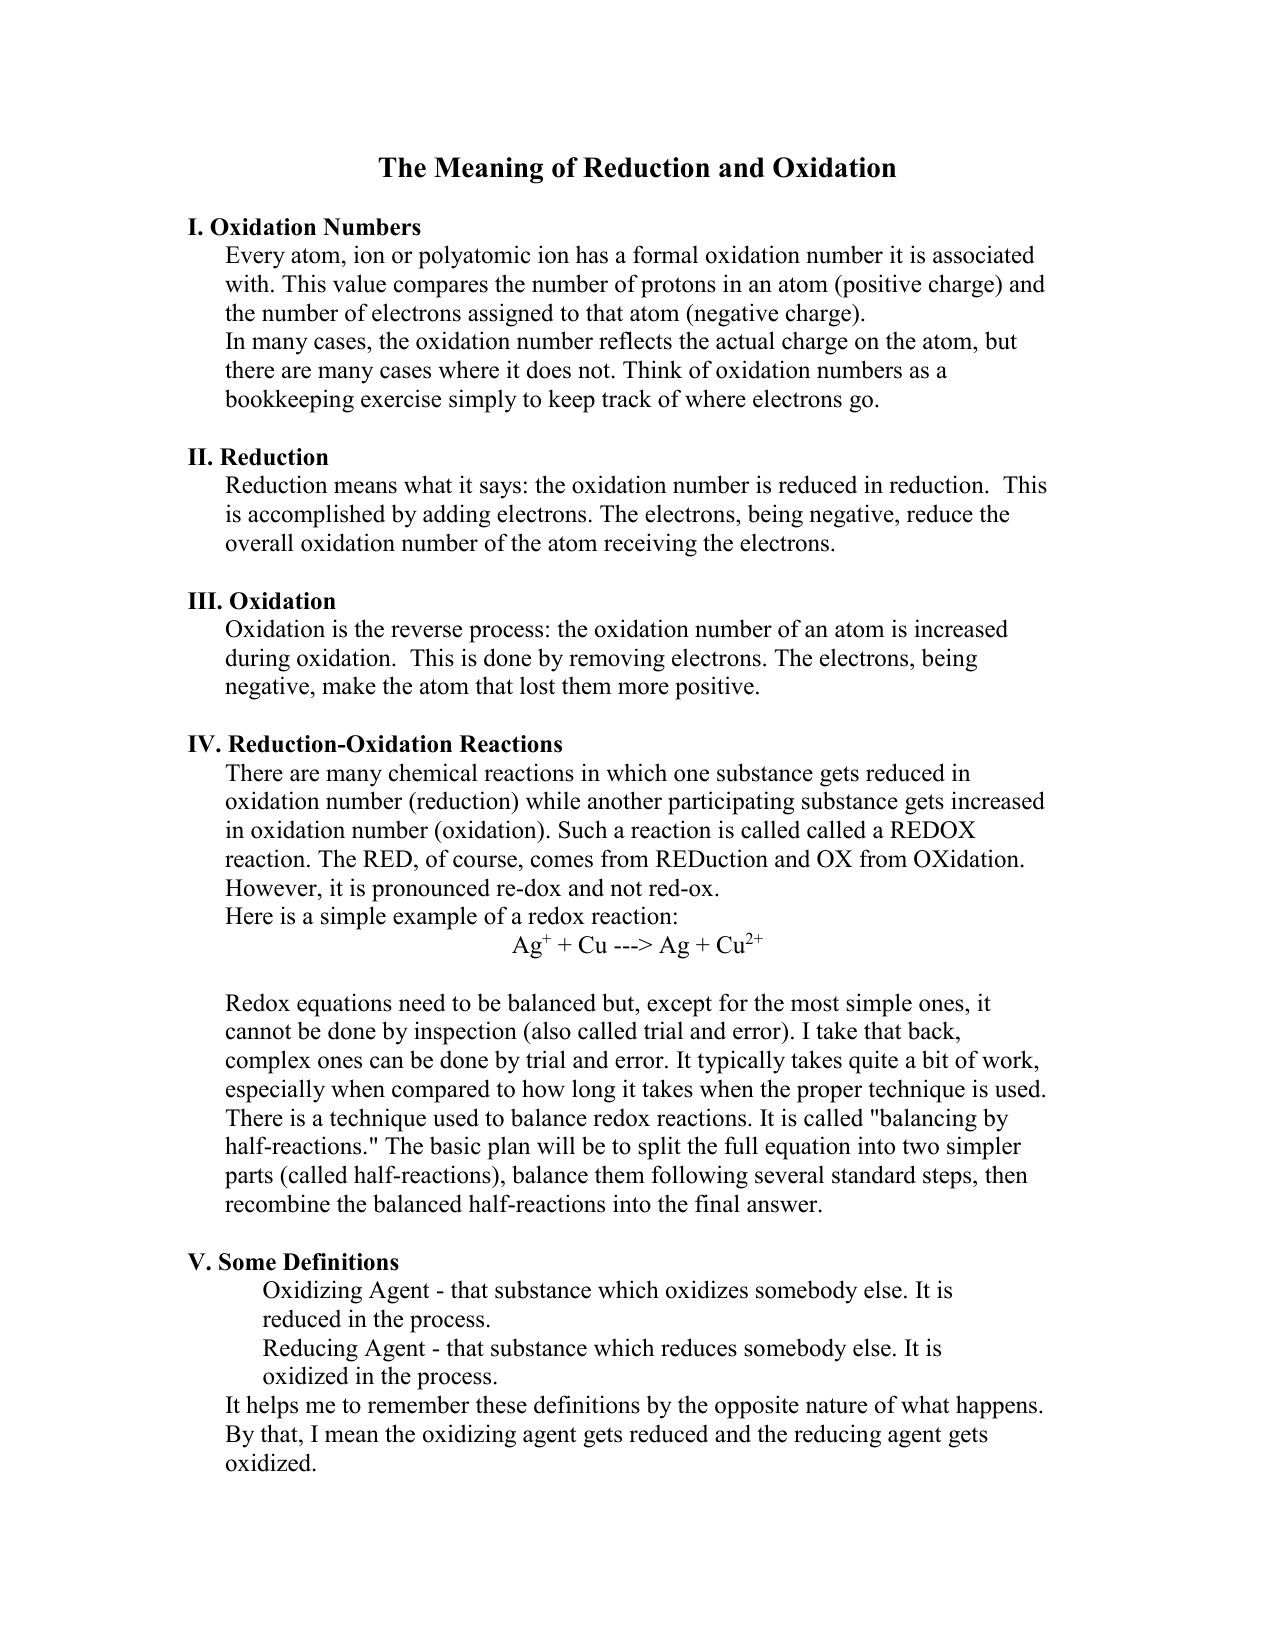 Oxidation Reduction 16 Page Guide